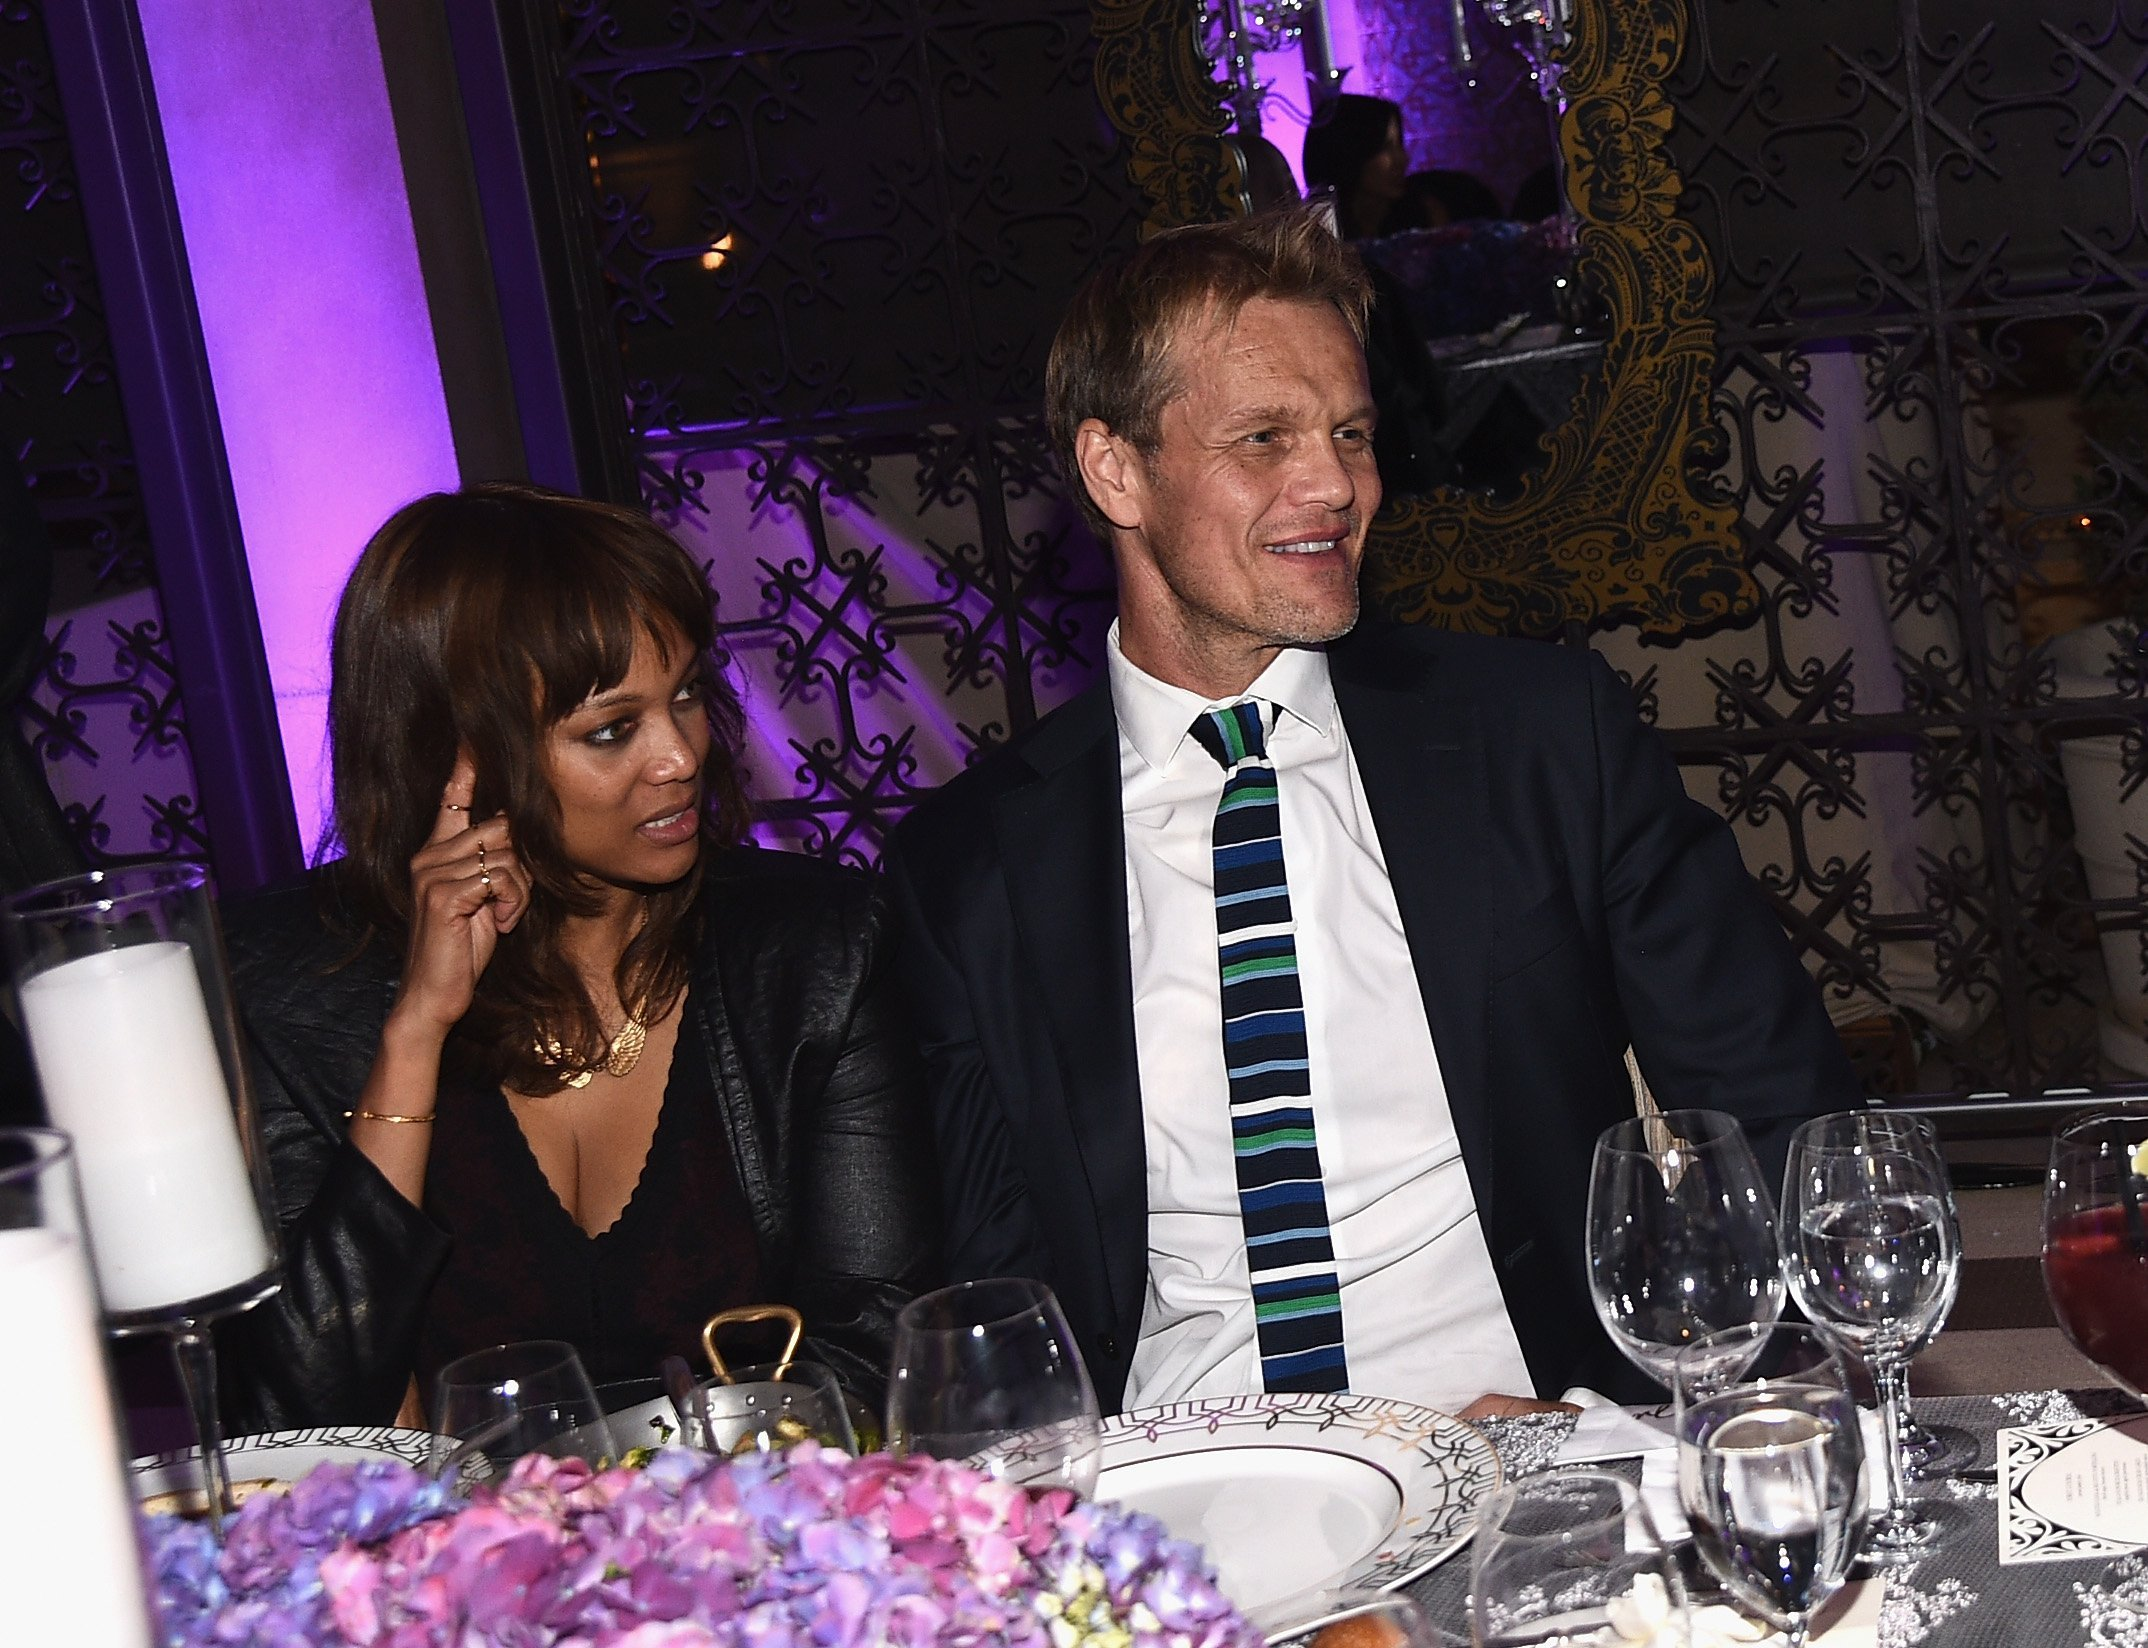 Tyra Banks and photographer Erik Asla attends the August Getty Atelier Dinner at the Montage Hotel Rooftop Grill on November 19, 2014 in Beverly Hills, California. | Source: GettyImages